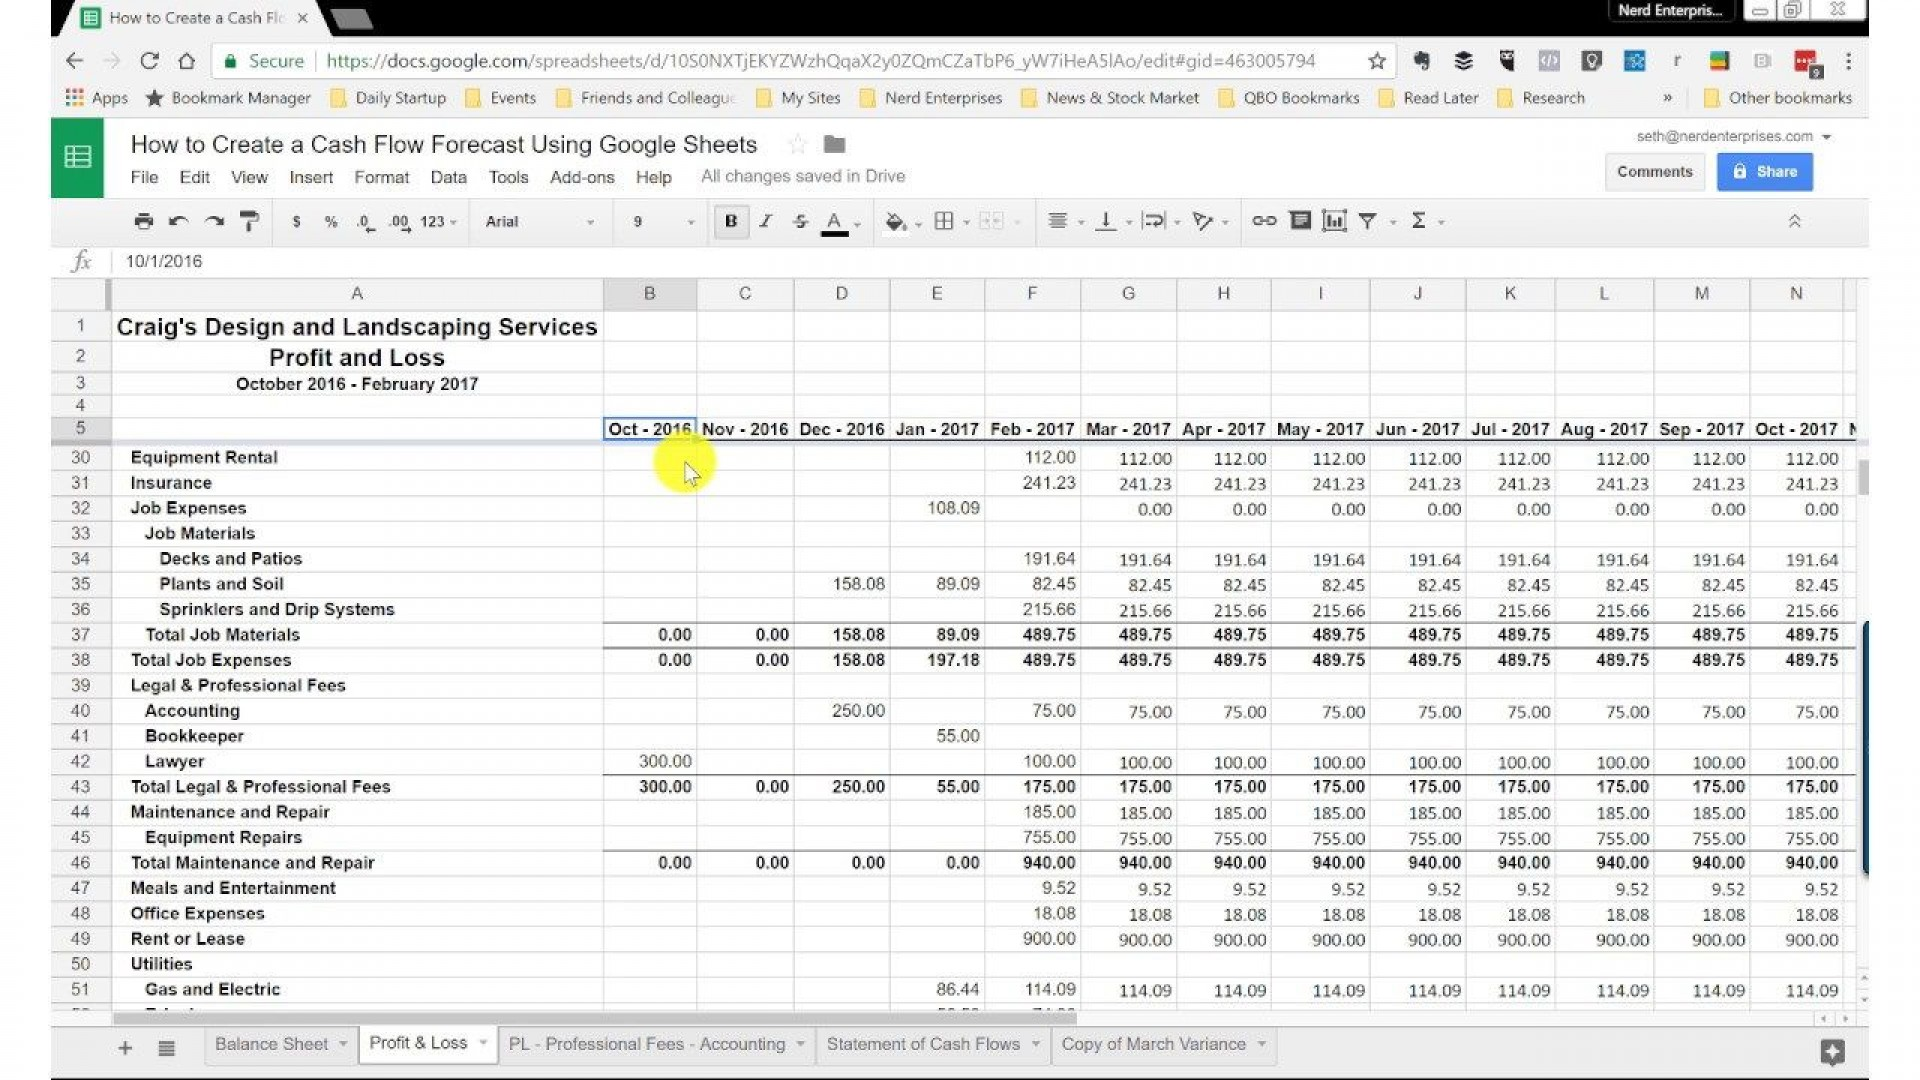 002 Awesome Weekly Cash Flow Statement Template Excel Highest Quality  Uk1920